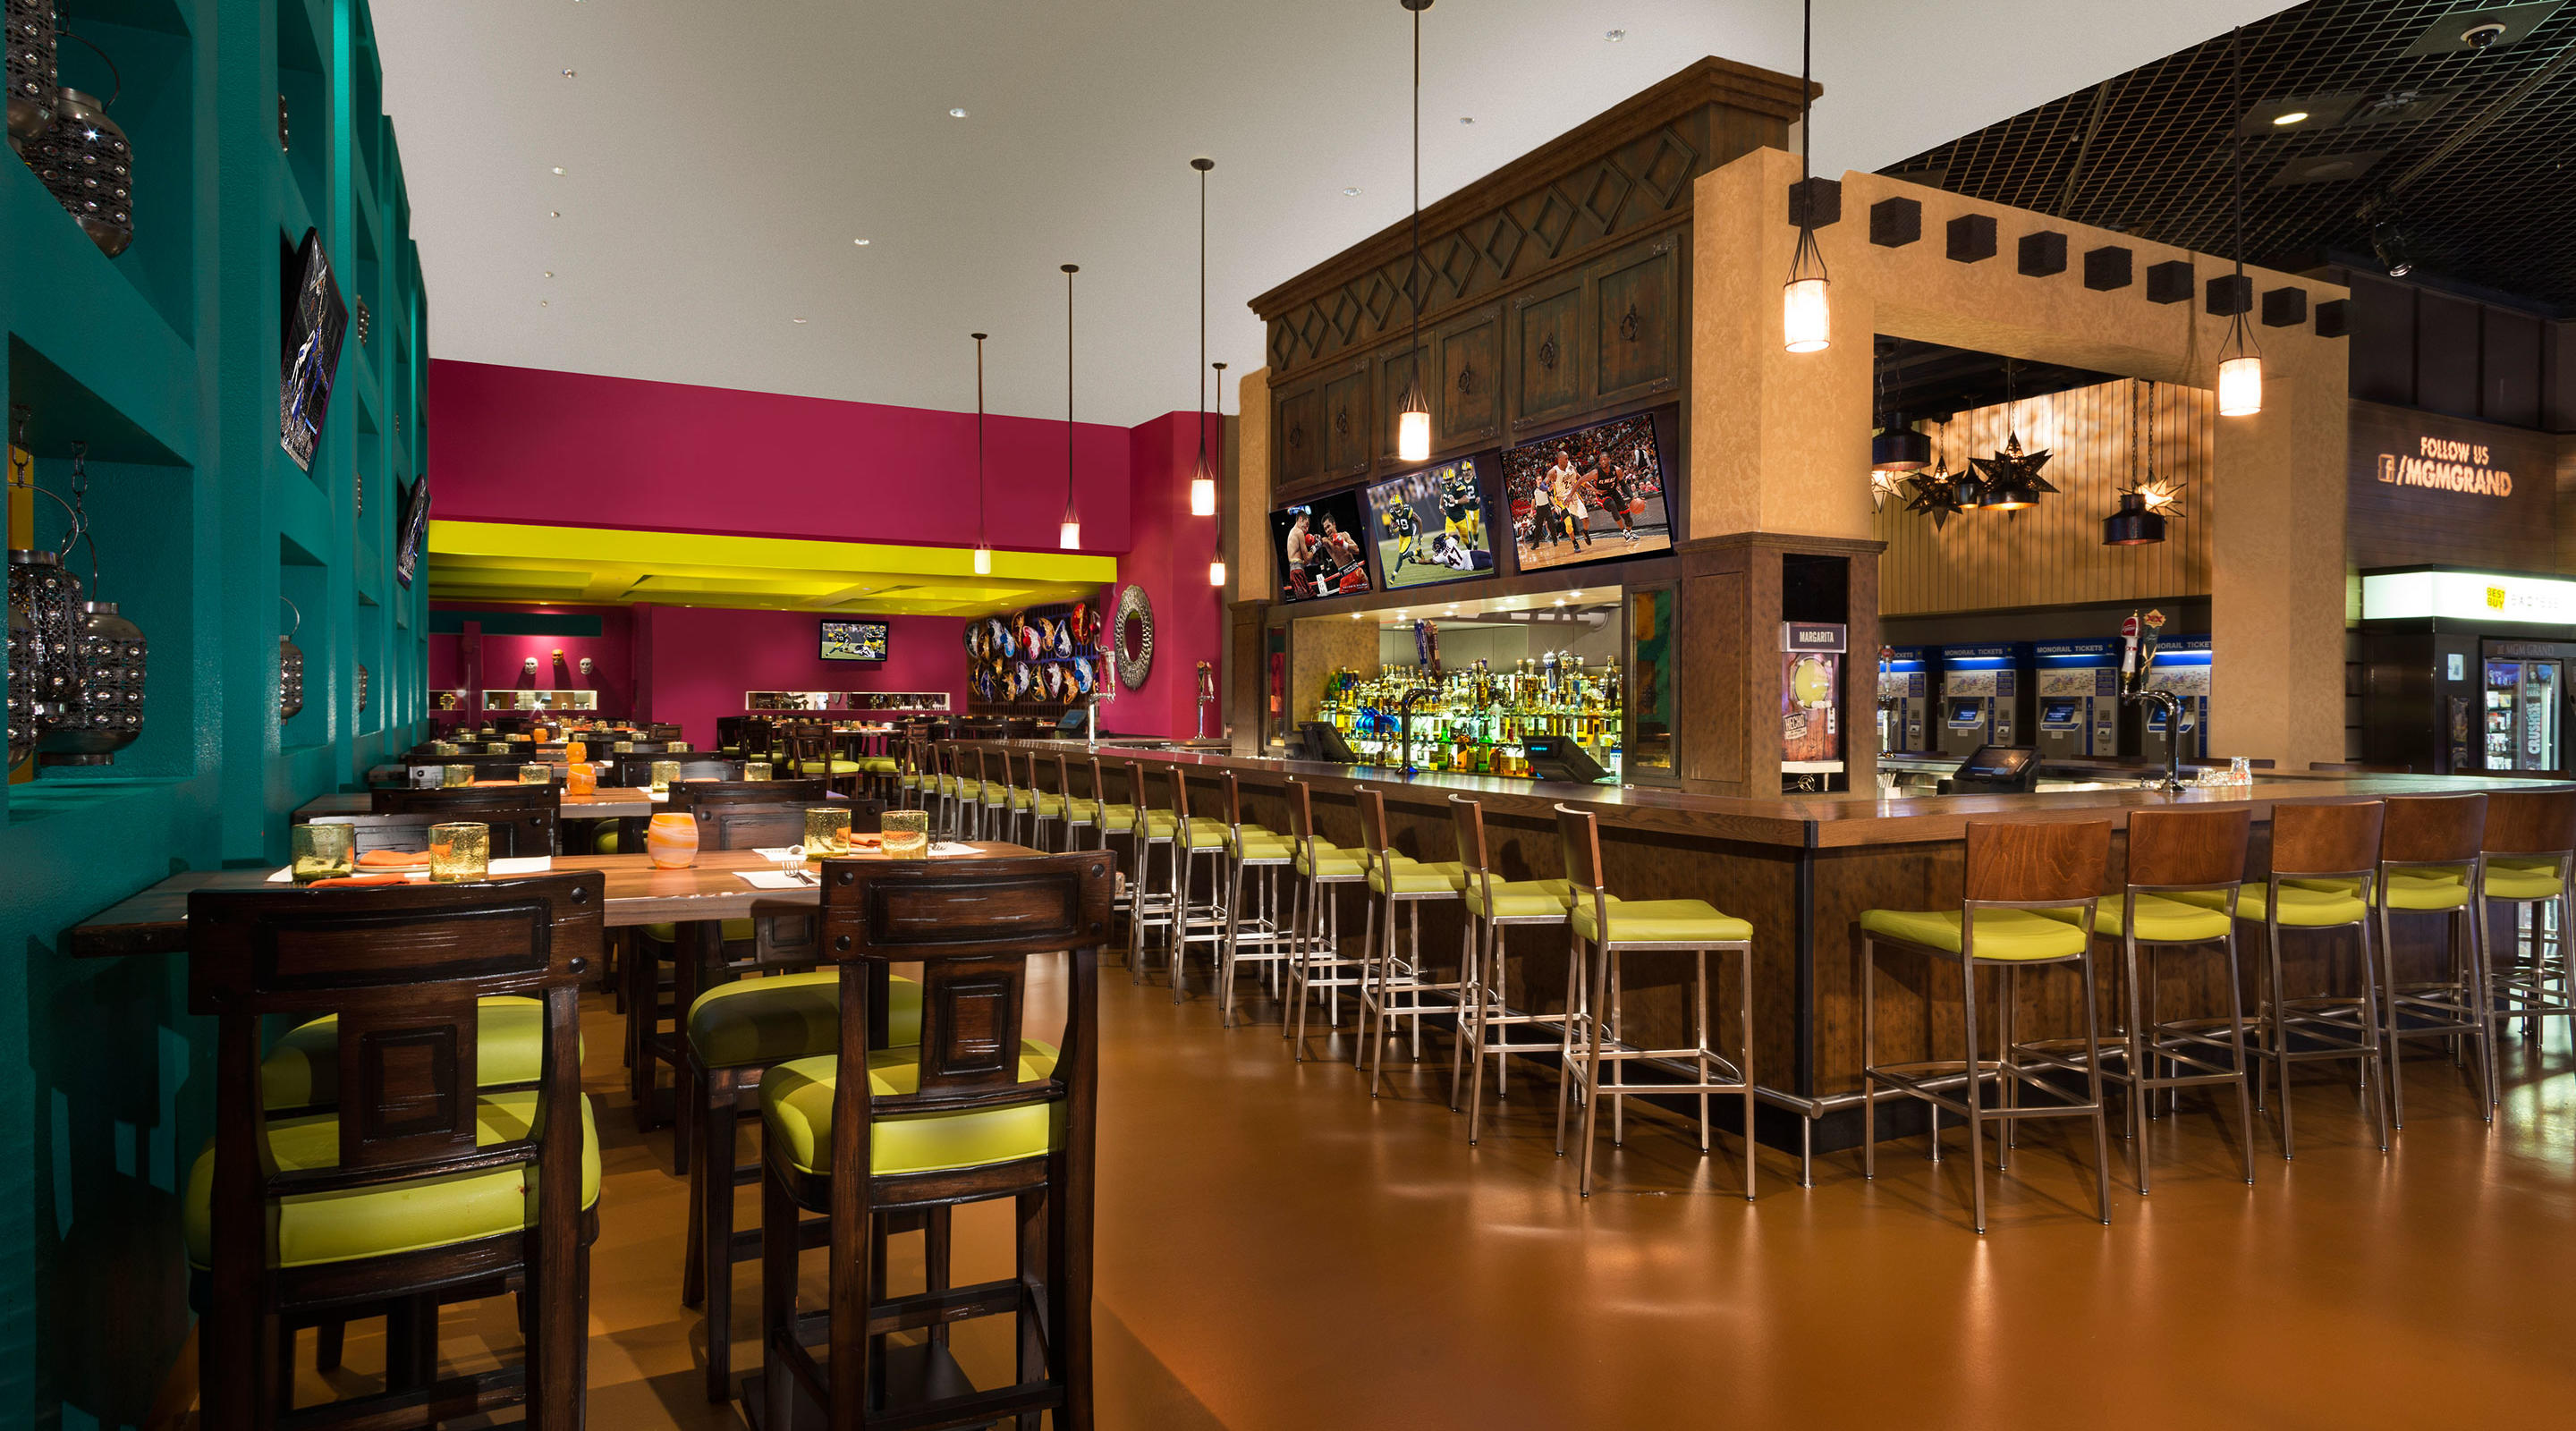 mgm-grand-restaurant-hecho-en-vegas-interior-bar-%402x